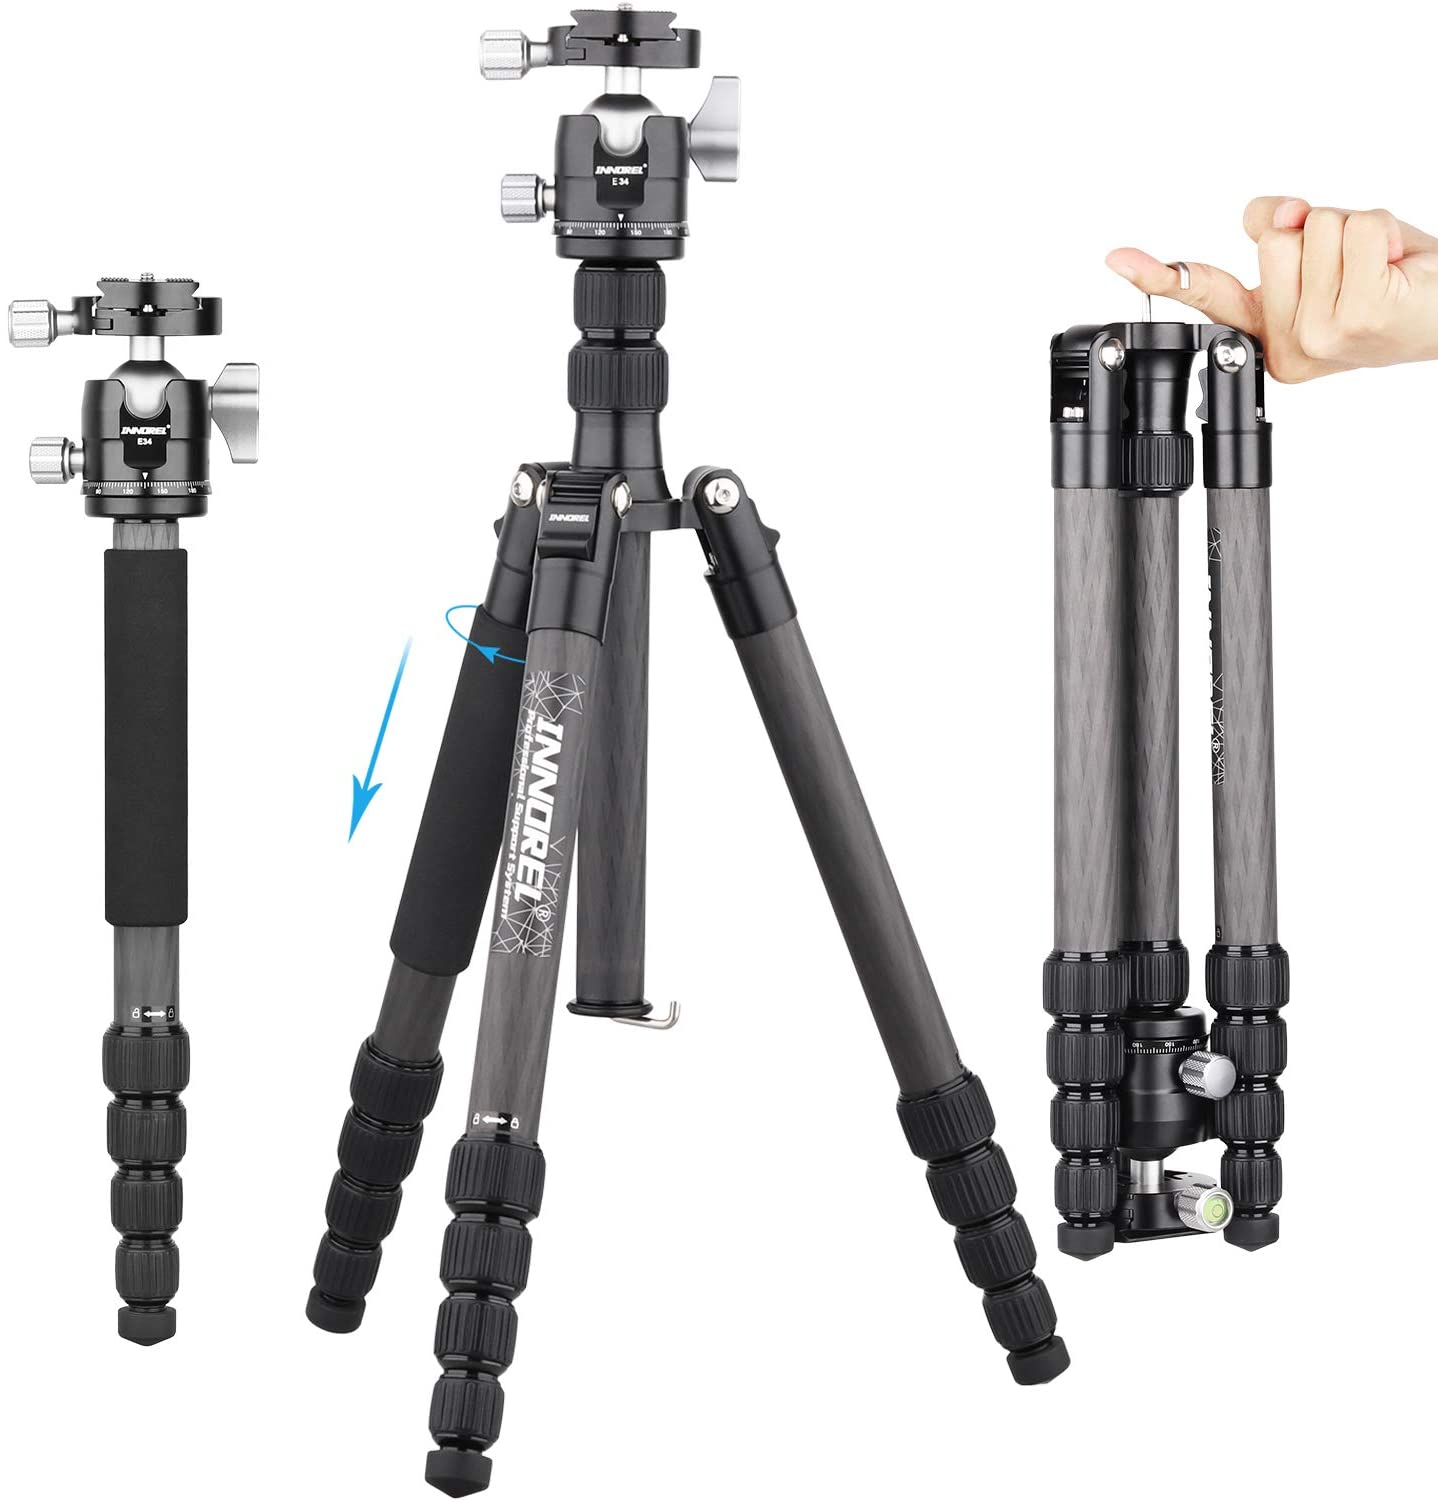 10 Layers Carbon Fiber Travel Tripod Monopod-INNOREL RT55C with Low Gravity Center Ball Head 360 Degree and Carrying Case Professional Lightweight Compact Tripods for Digital Camera Camcorder DSLR